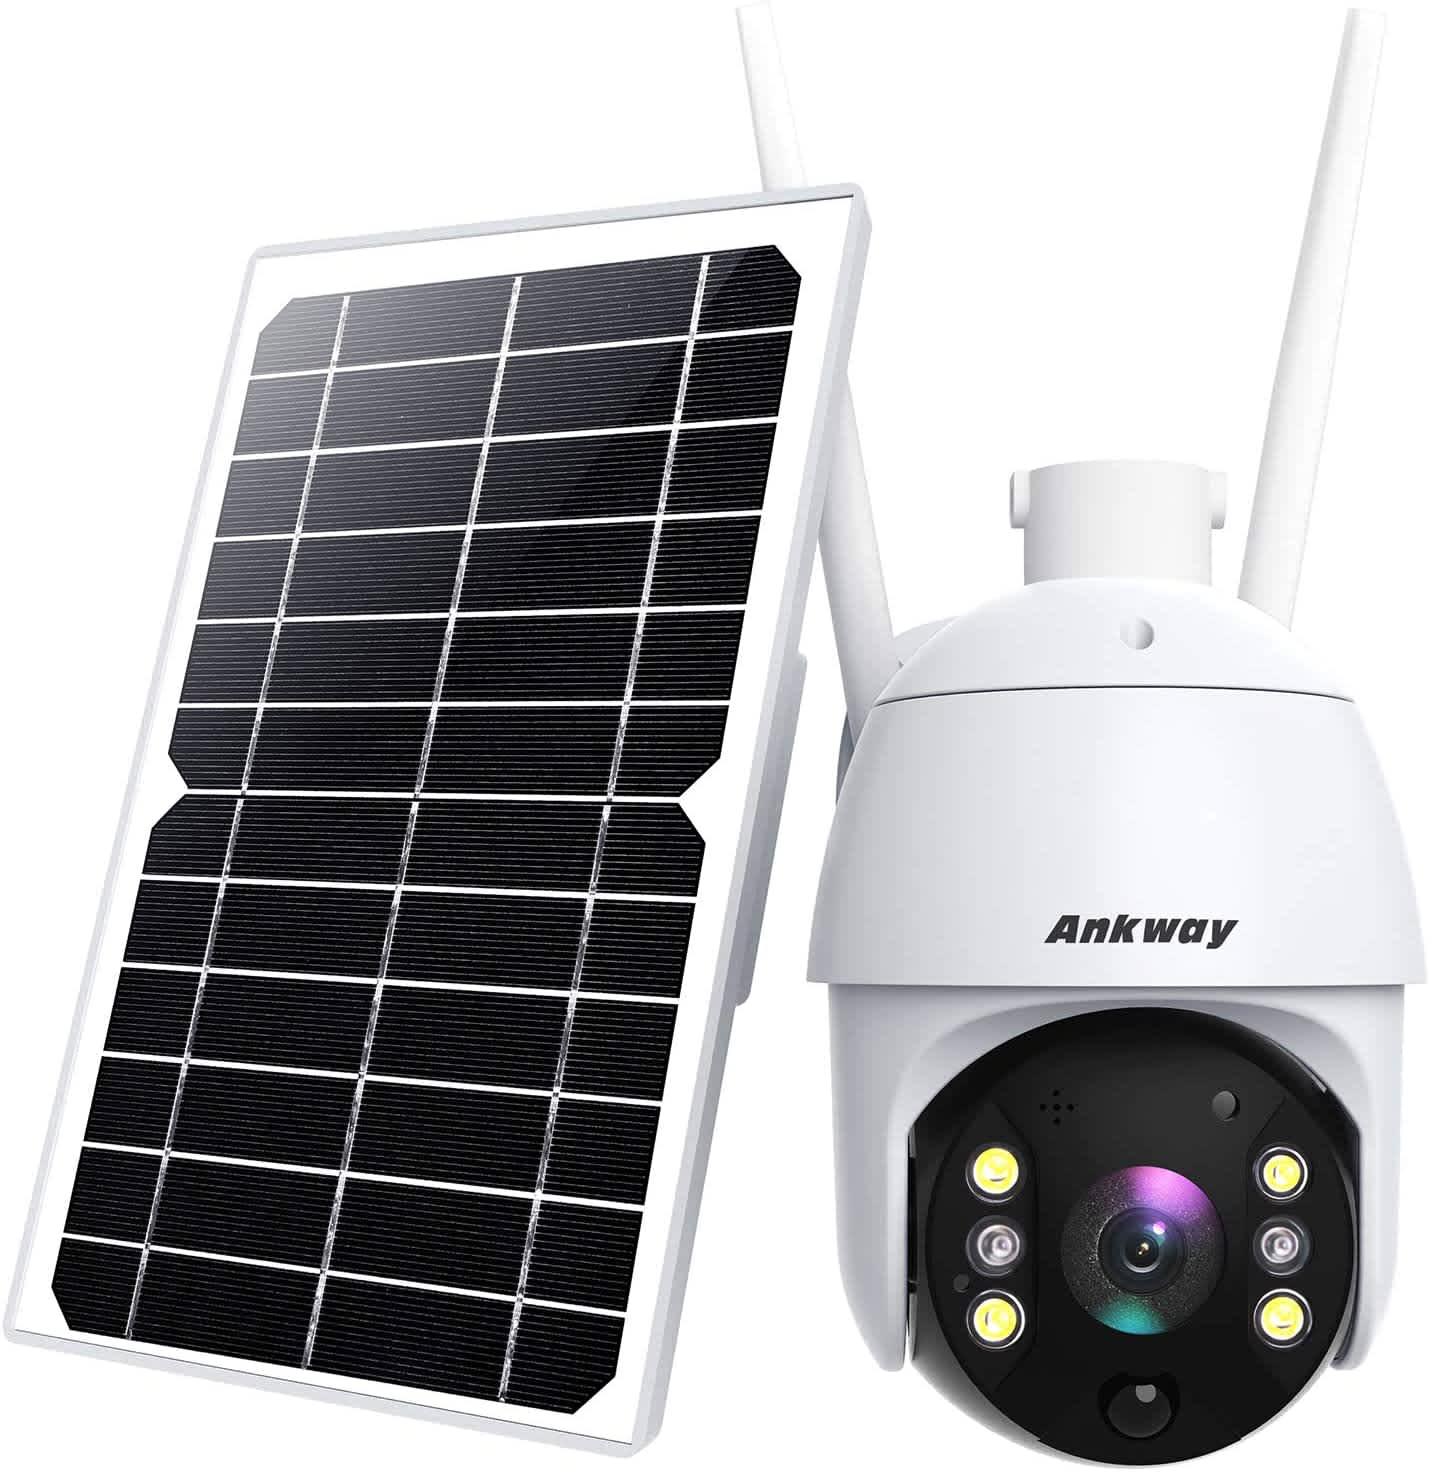 Ankway Solar Outdoor Security Camera